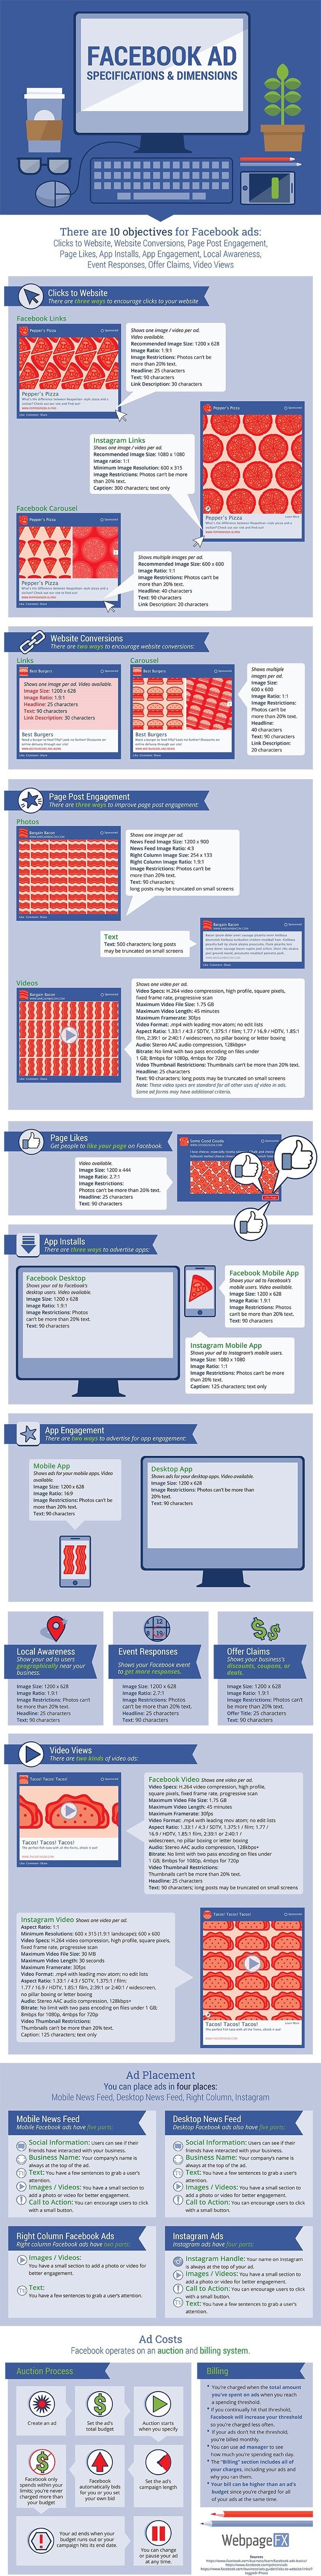 Facebook ad objectives overview